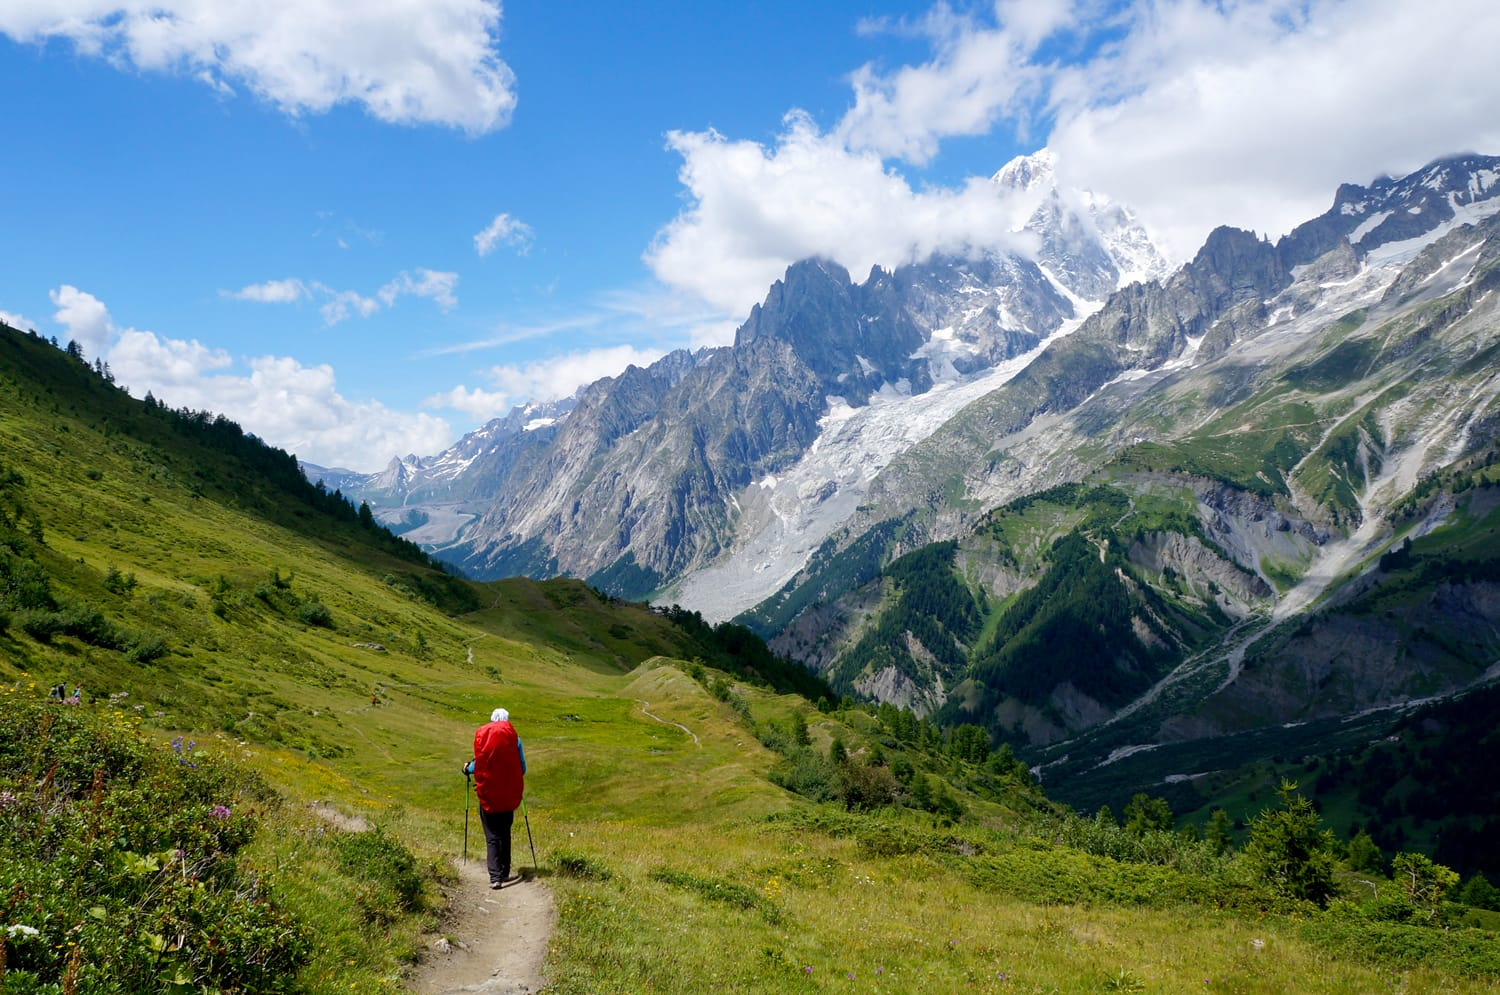 Backpacker hiking in the mountains on a tourist track on the Tour of Mont Blanc, Italy